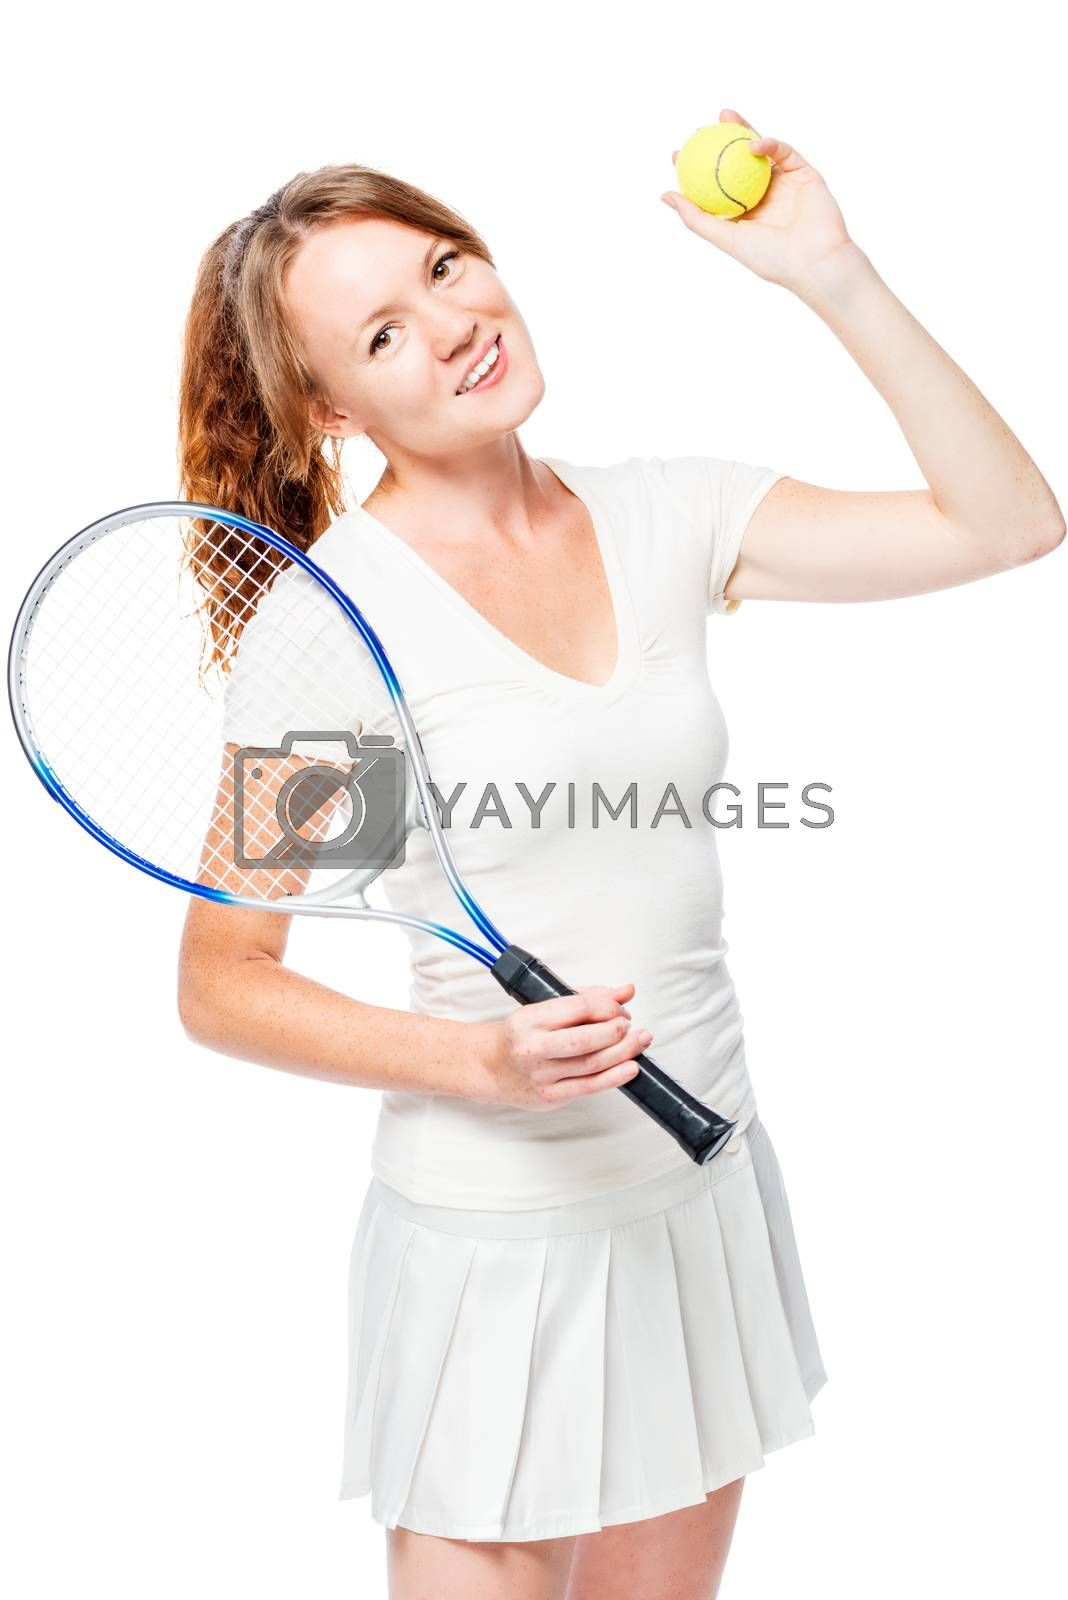 Favorite hobby - a game in big tennis, a portrait on a white background